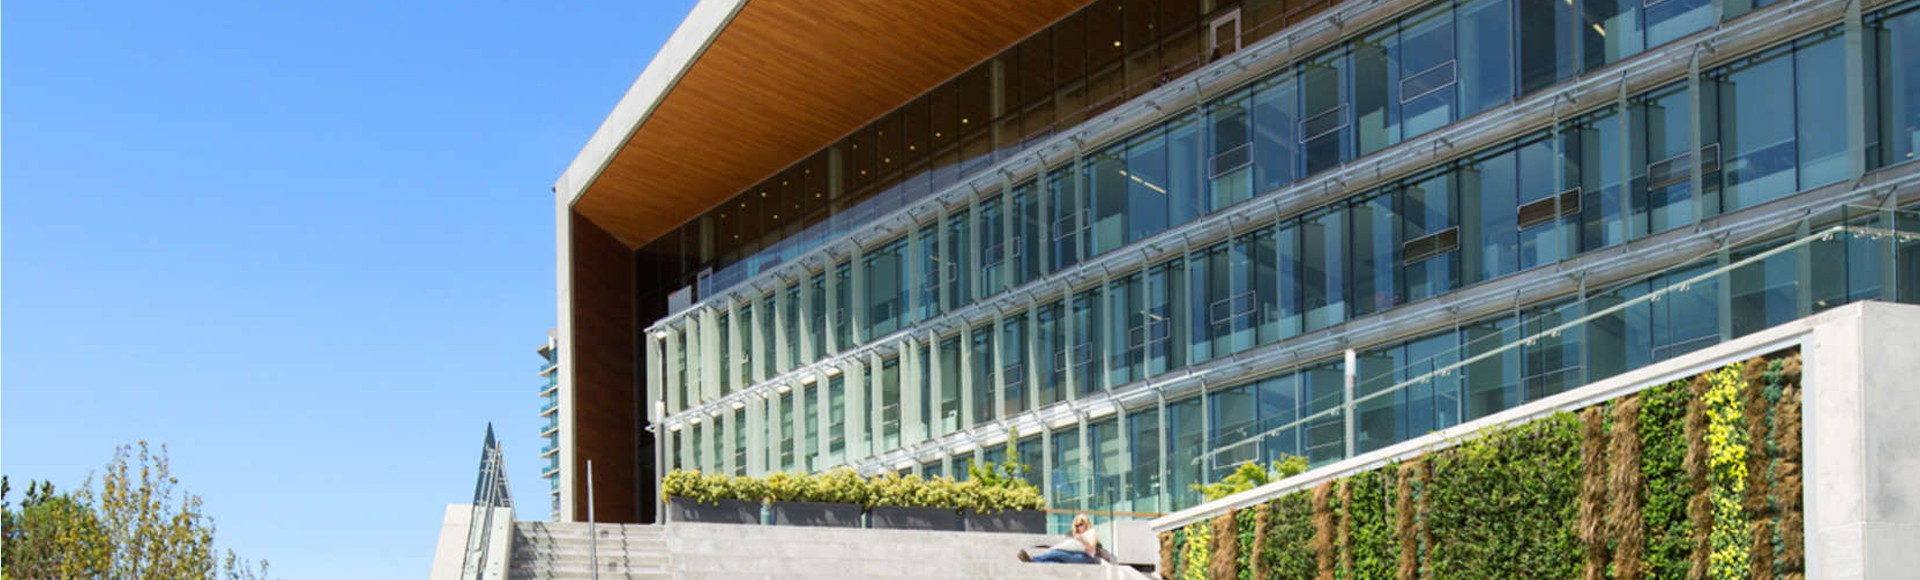 SurreyCivicCentre-3-1920×580-c-center